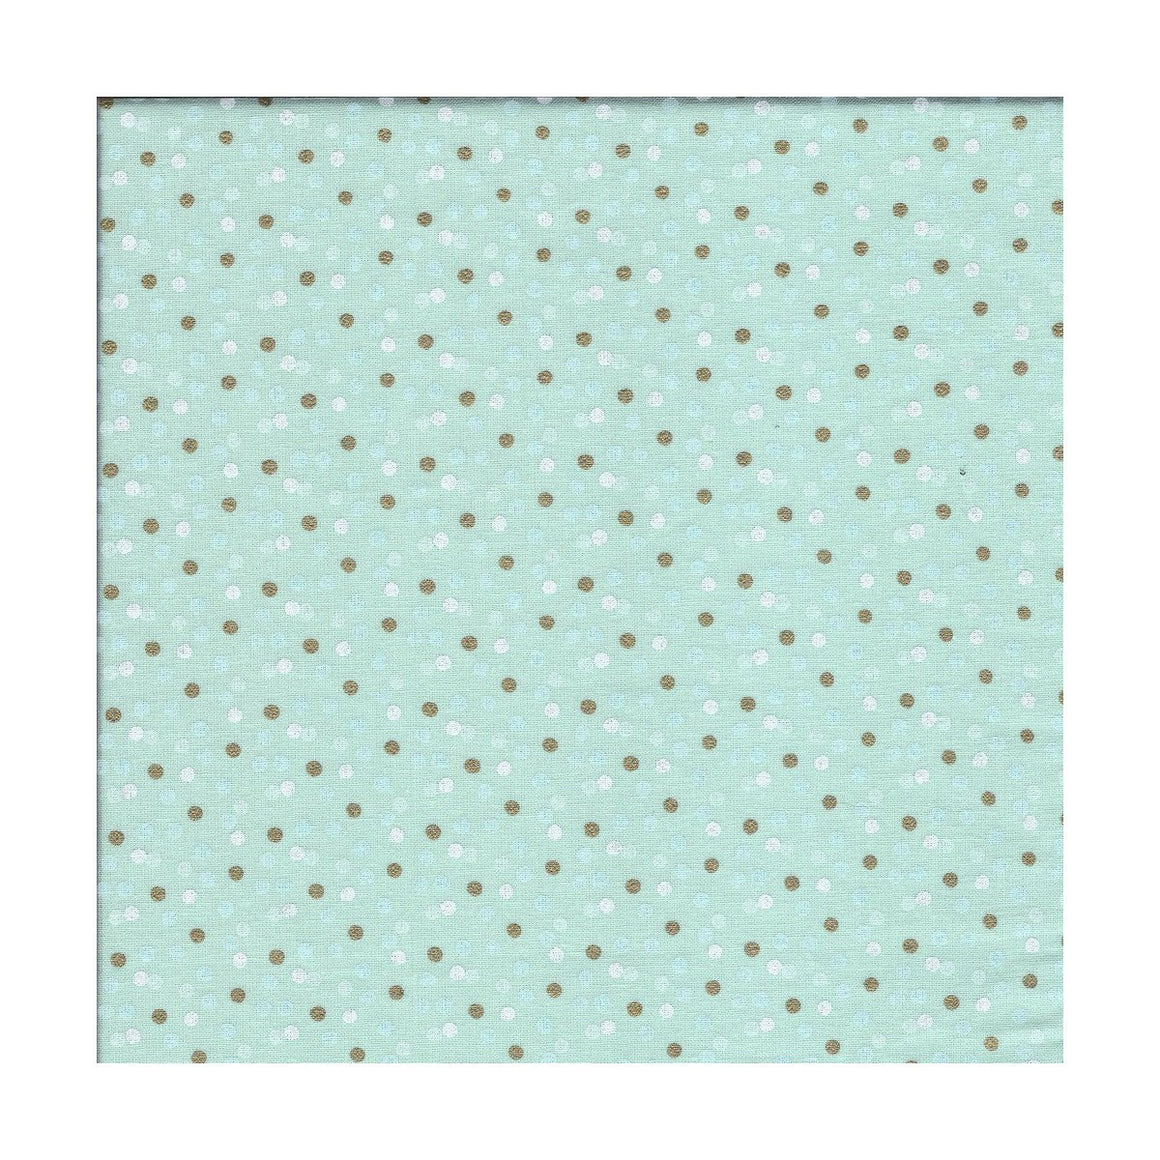 bandana, mint green, polka dots, exclusive, unique to bazooka bandanas